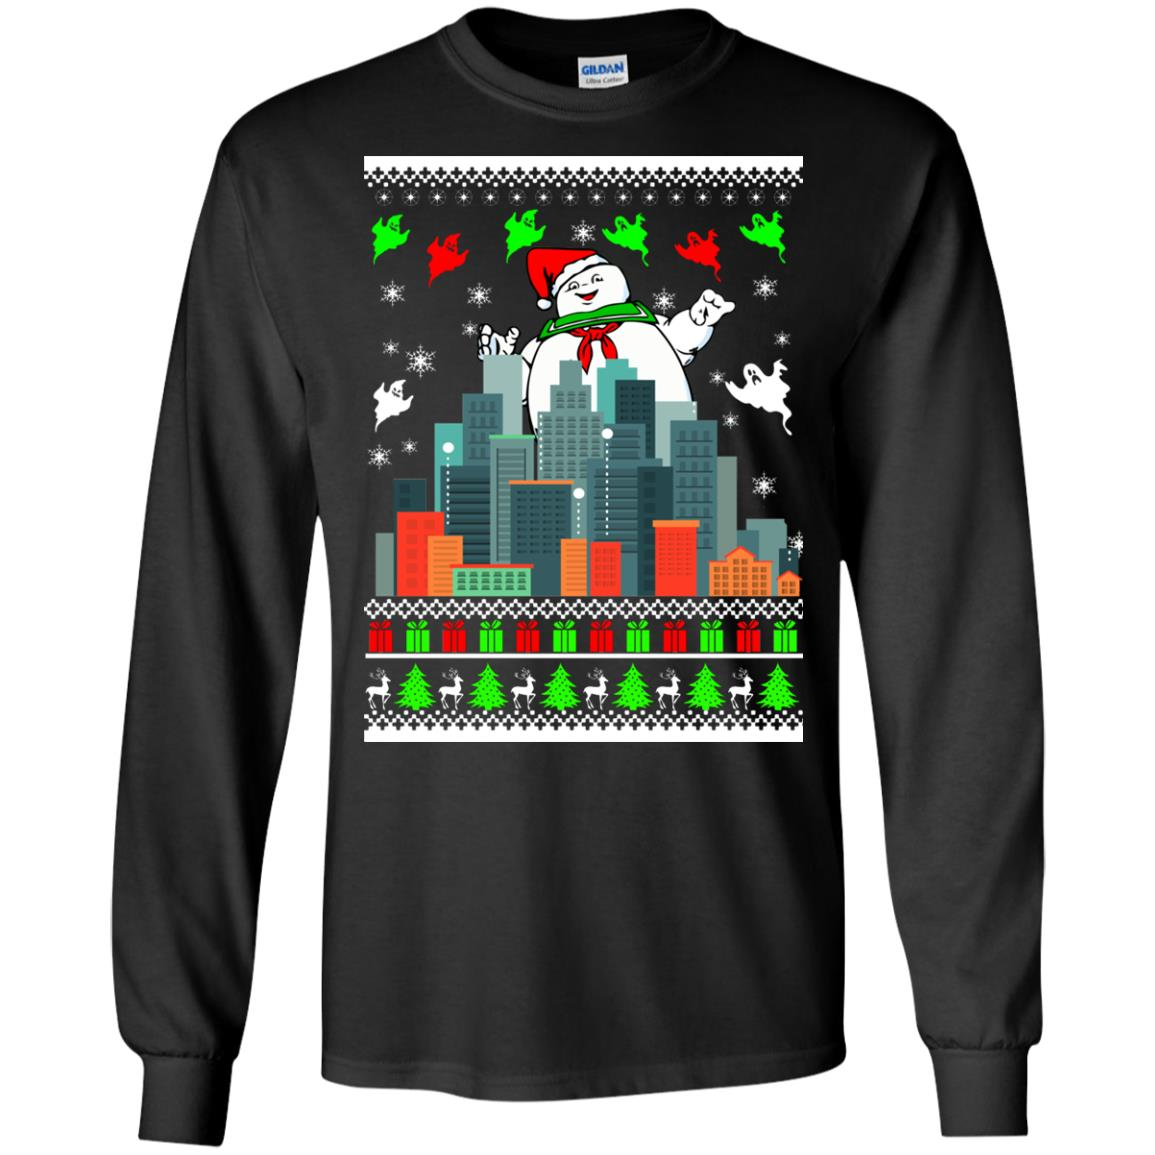 image 4466 - There is no Santa only Zuul Christmas Sweater, Shirt